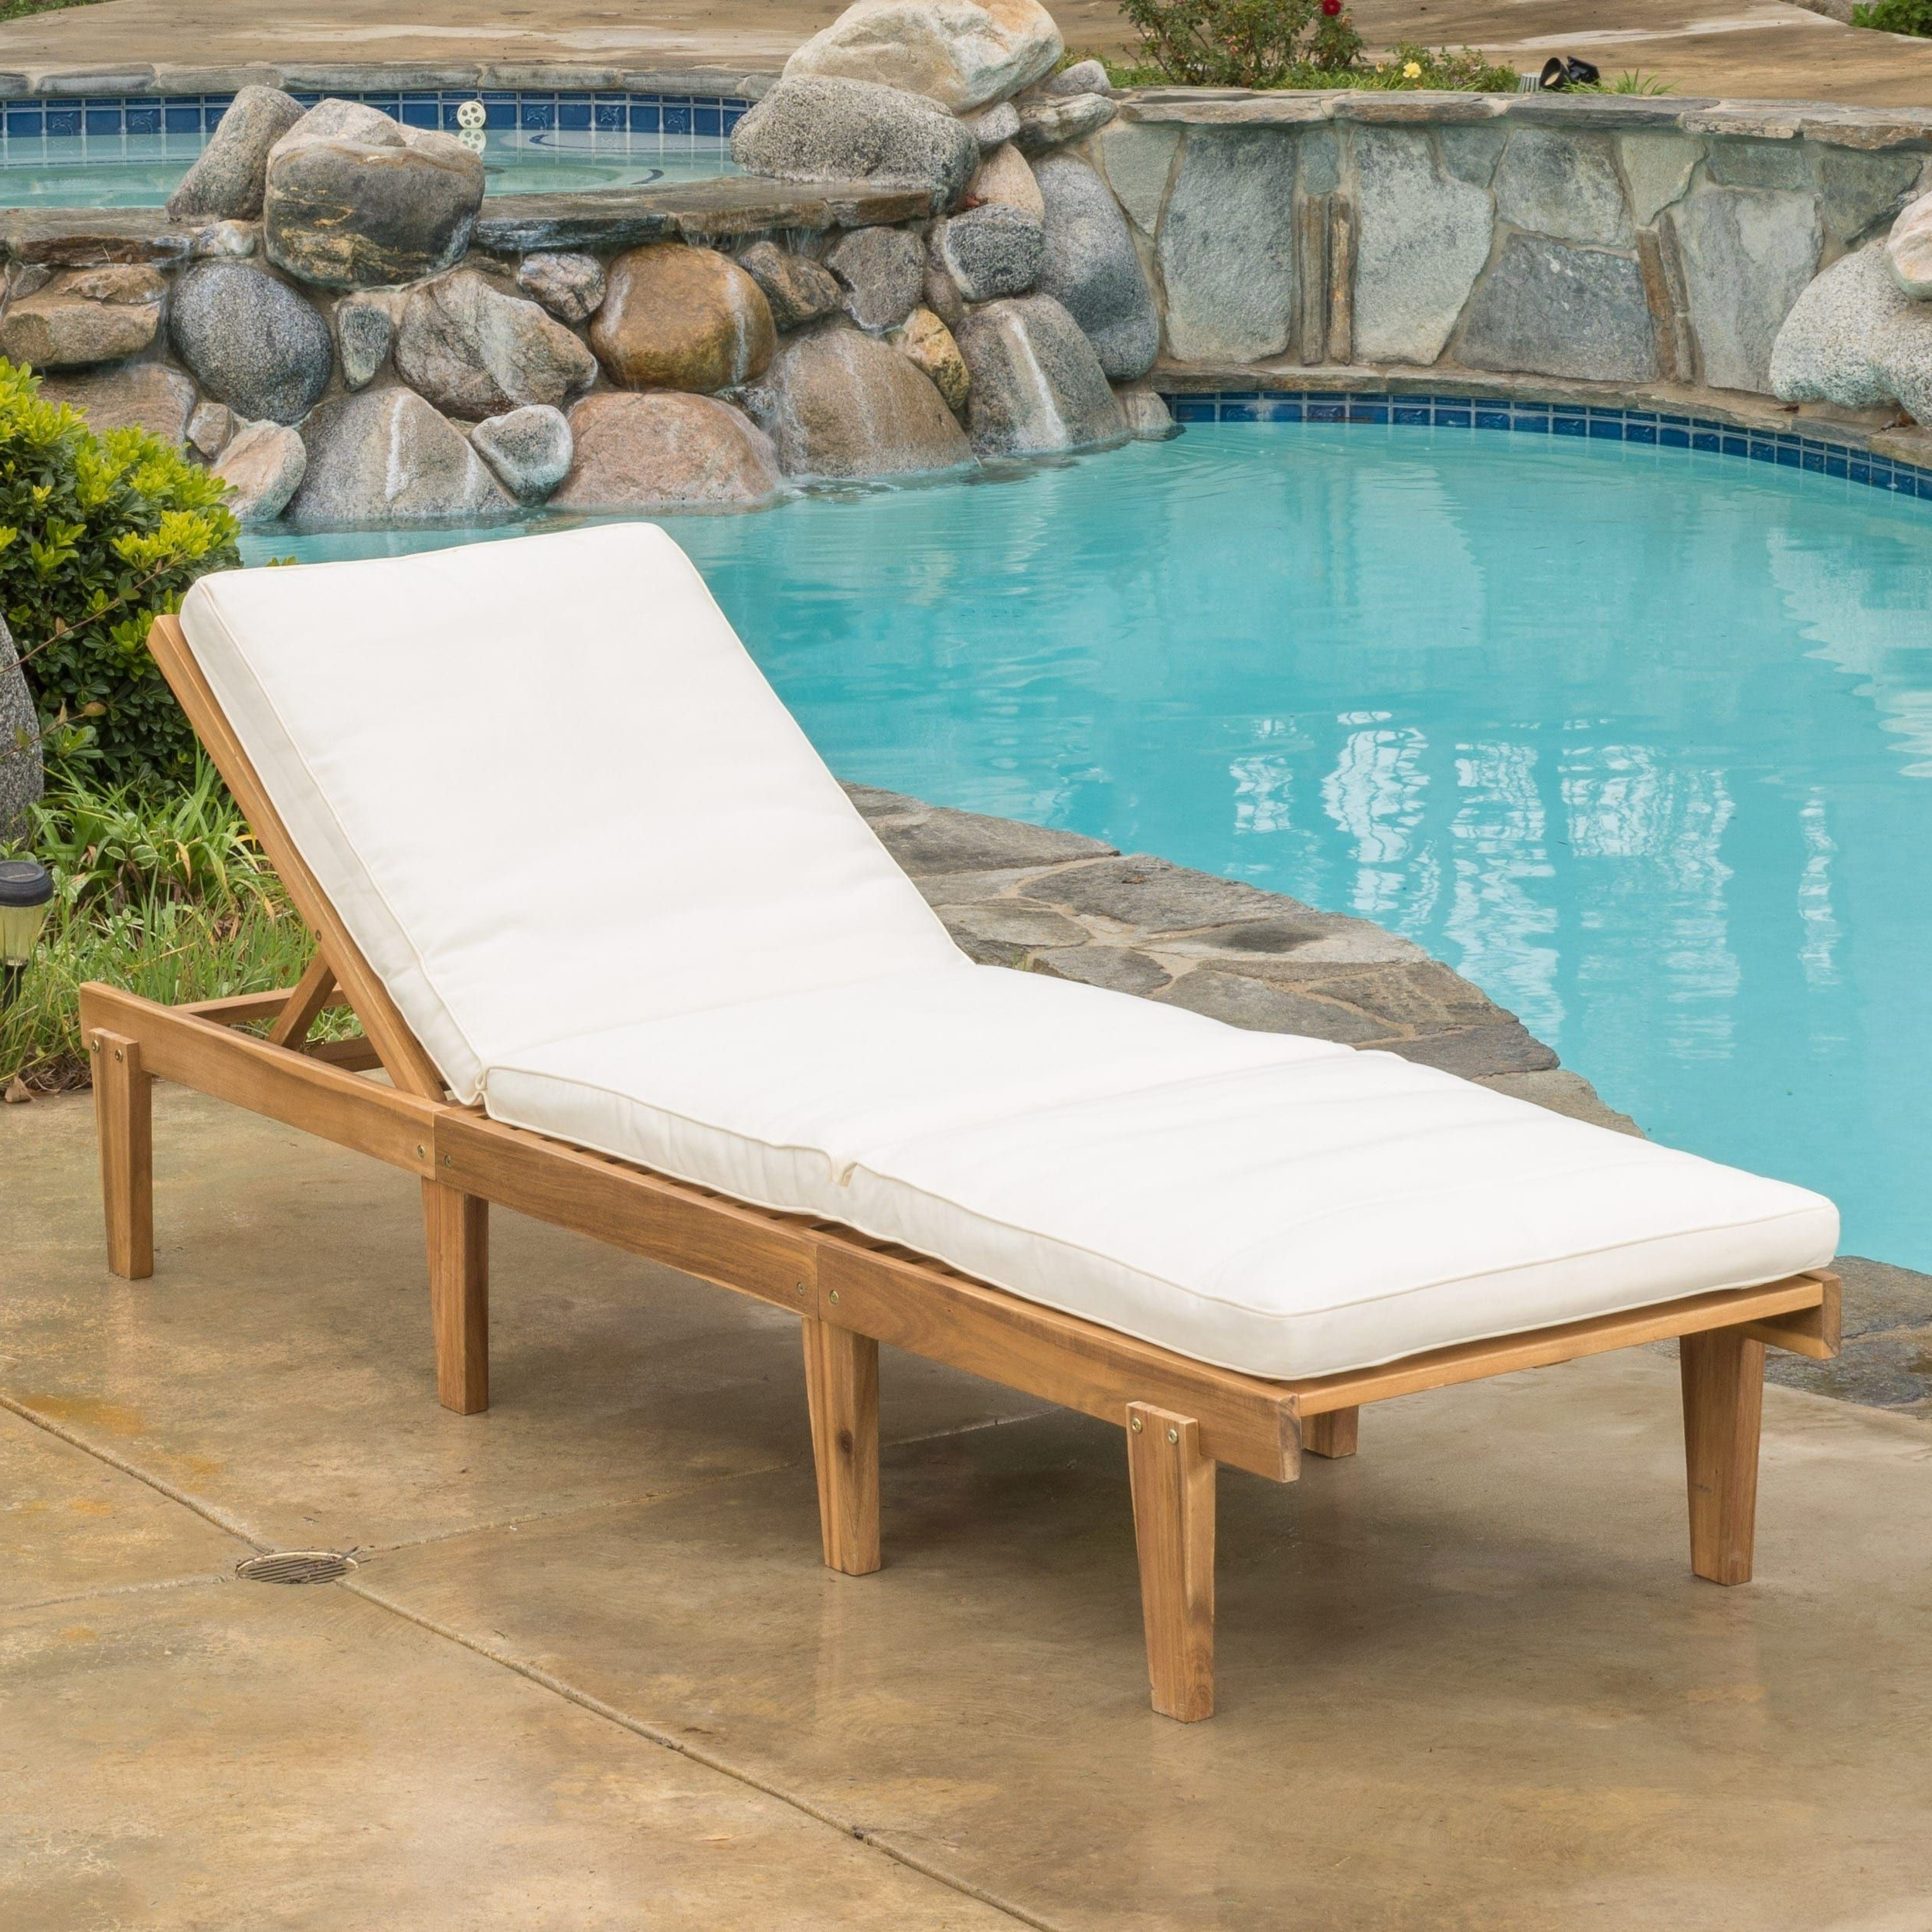 Outdoor Rustic Acacia Wood Chaise Lounges With Wicker Seats Within Most Popular Ariana Acacia Outdoor Wood Chaise Lounge With Cushion (View 21 of 25)